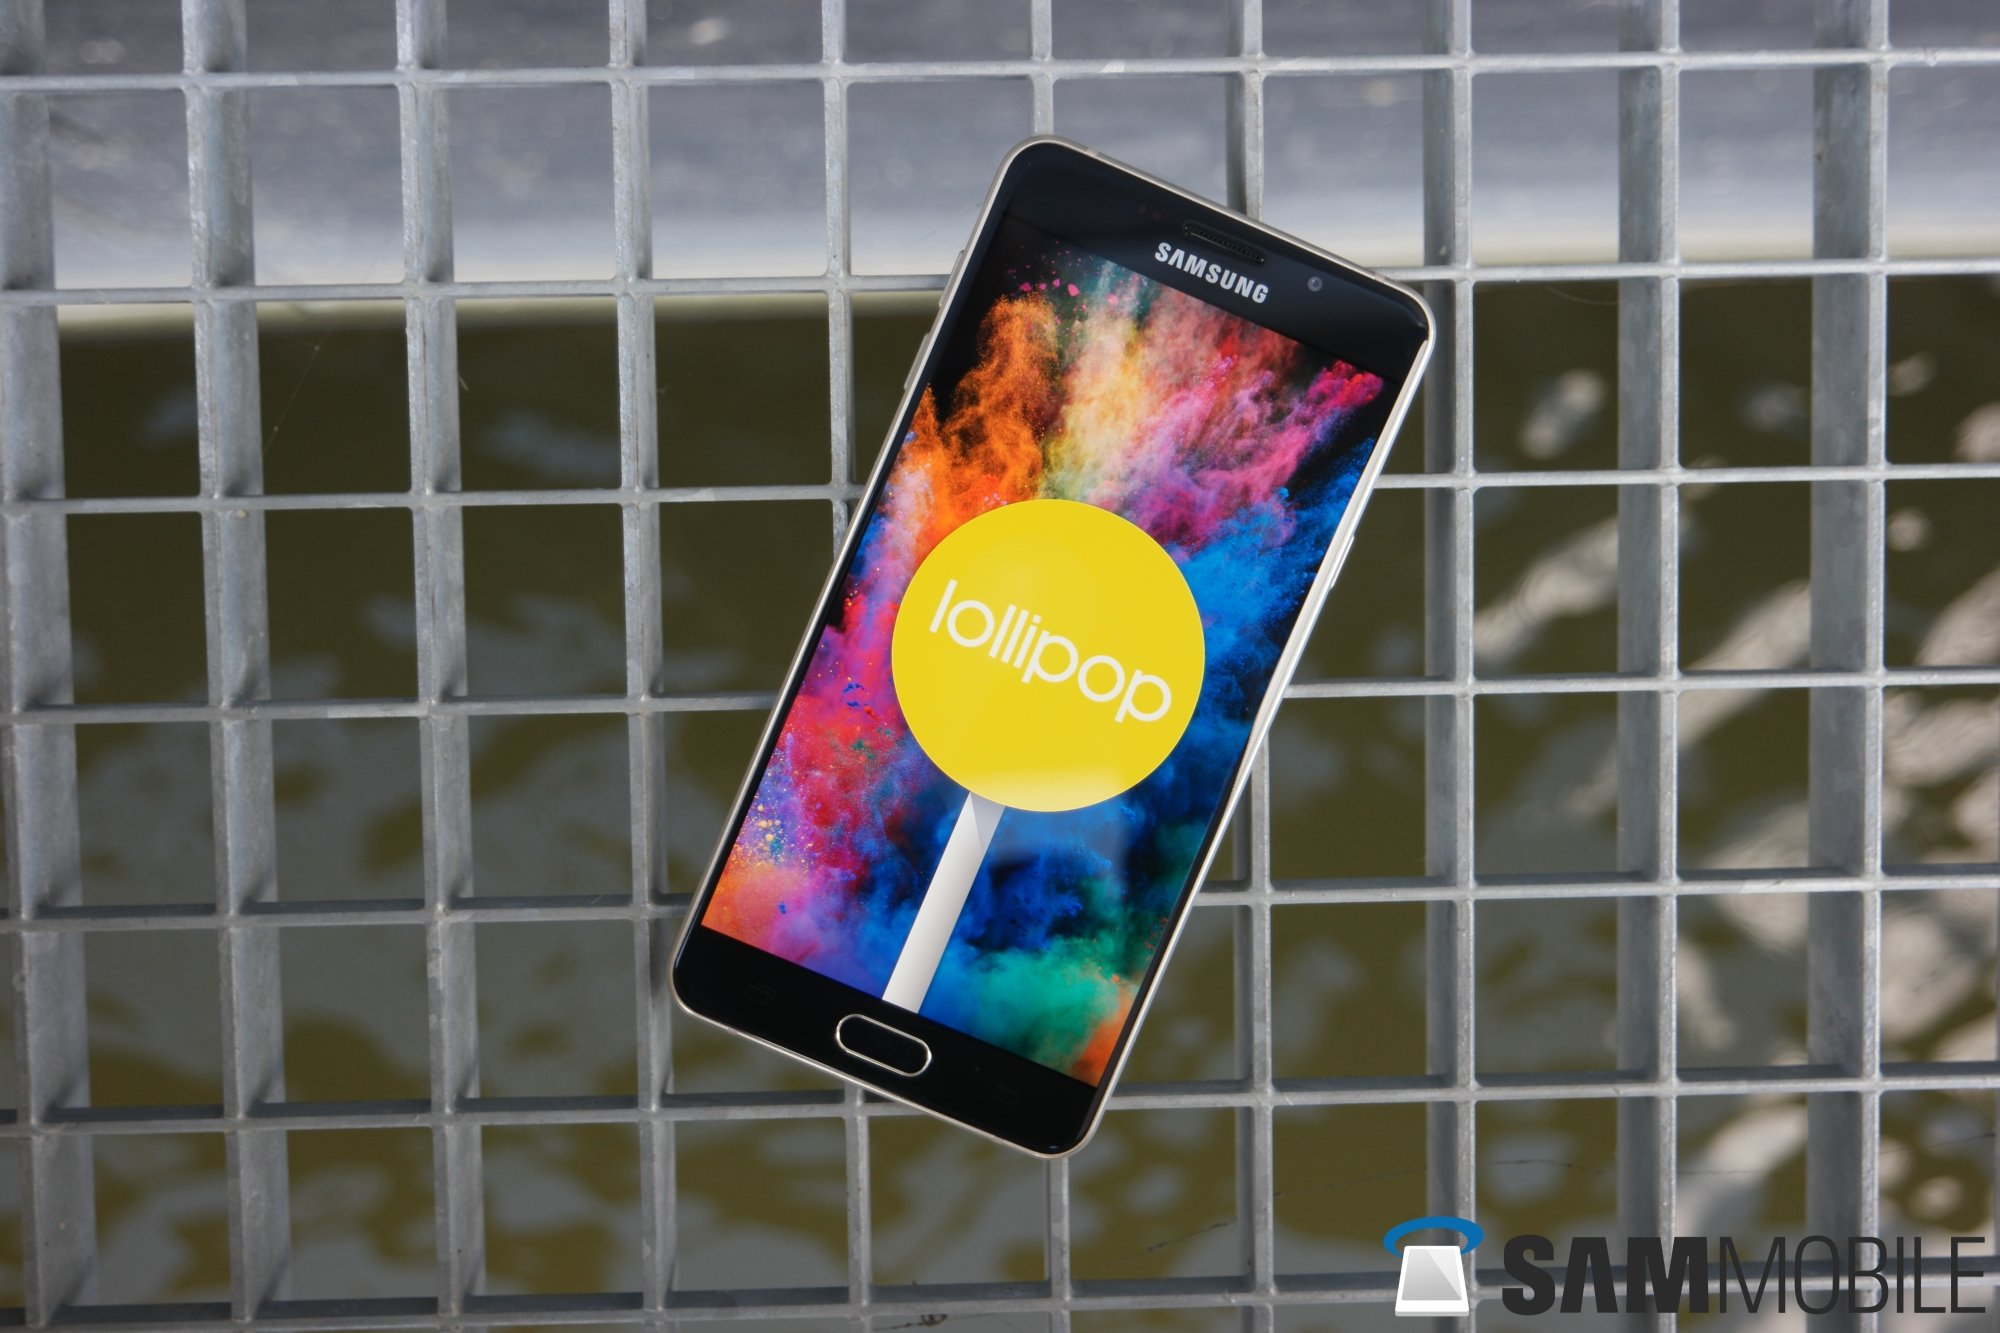 Galaxy A7 (2016) review: Best mid-range phone in Samsung's